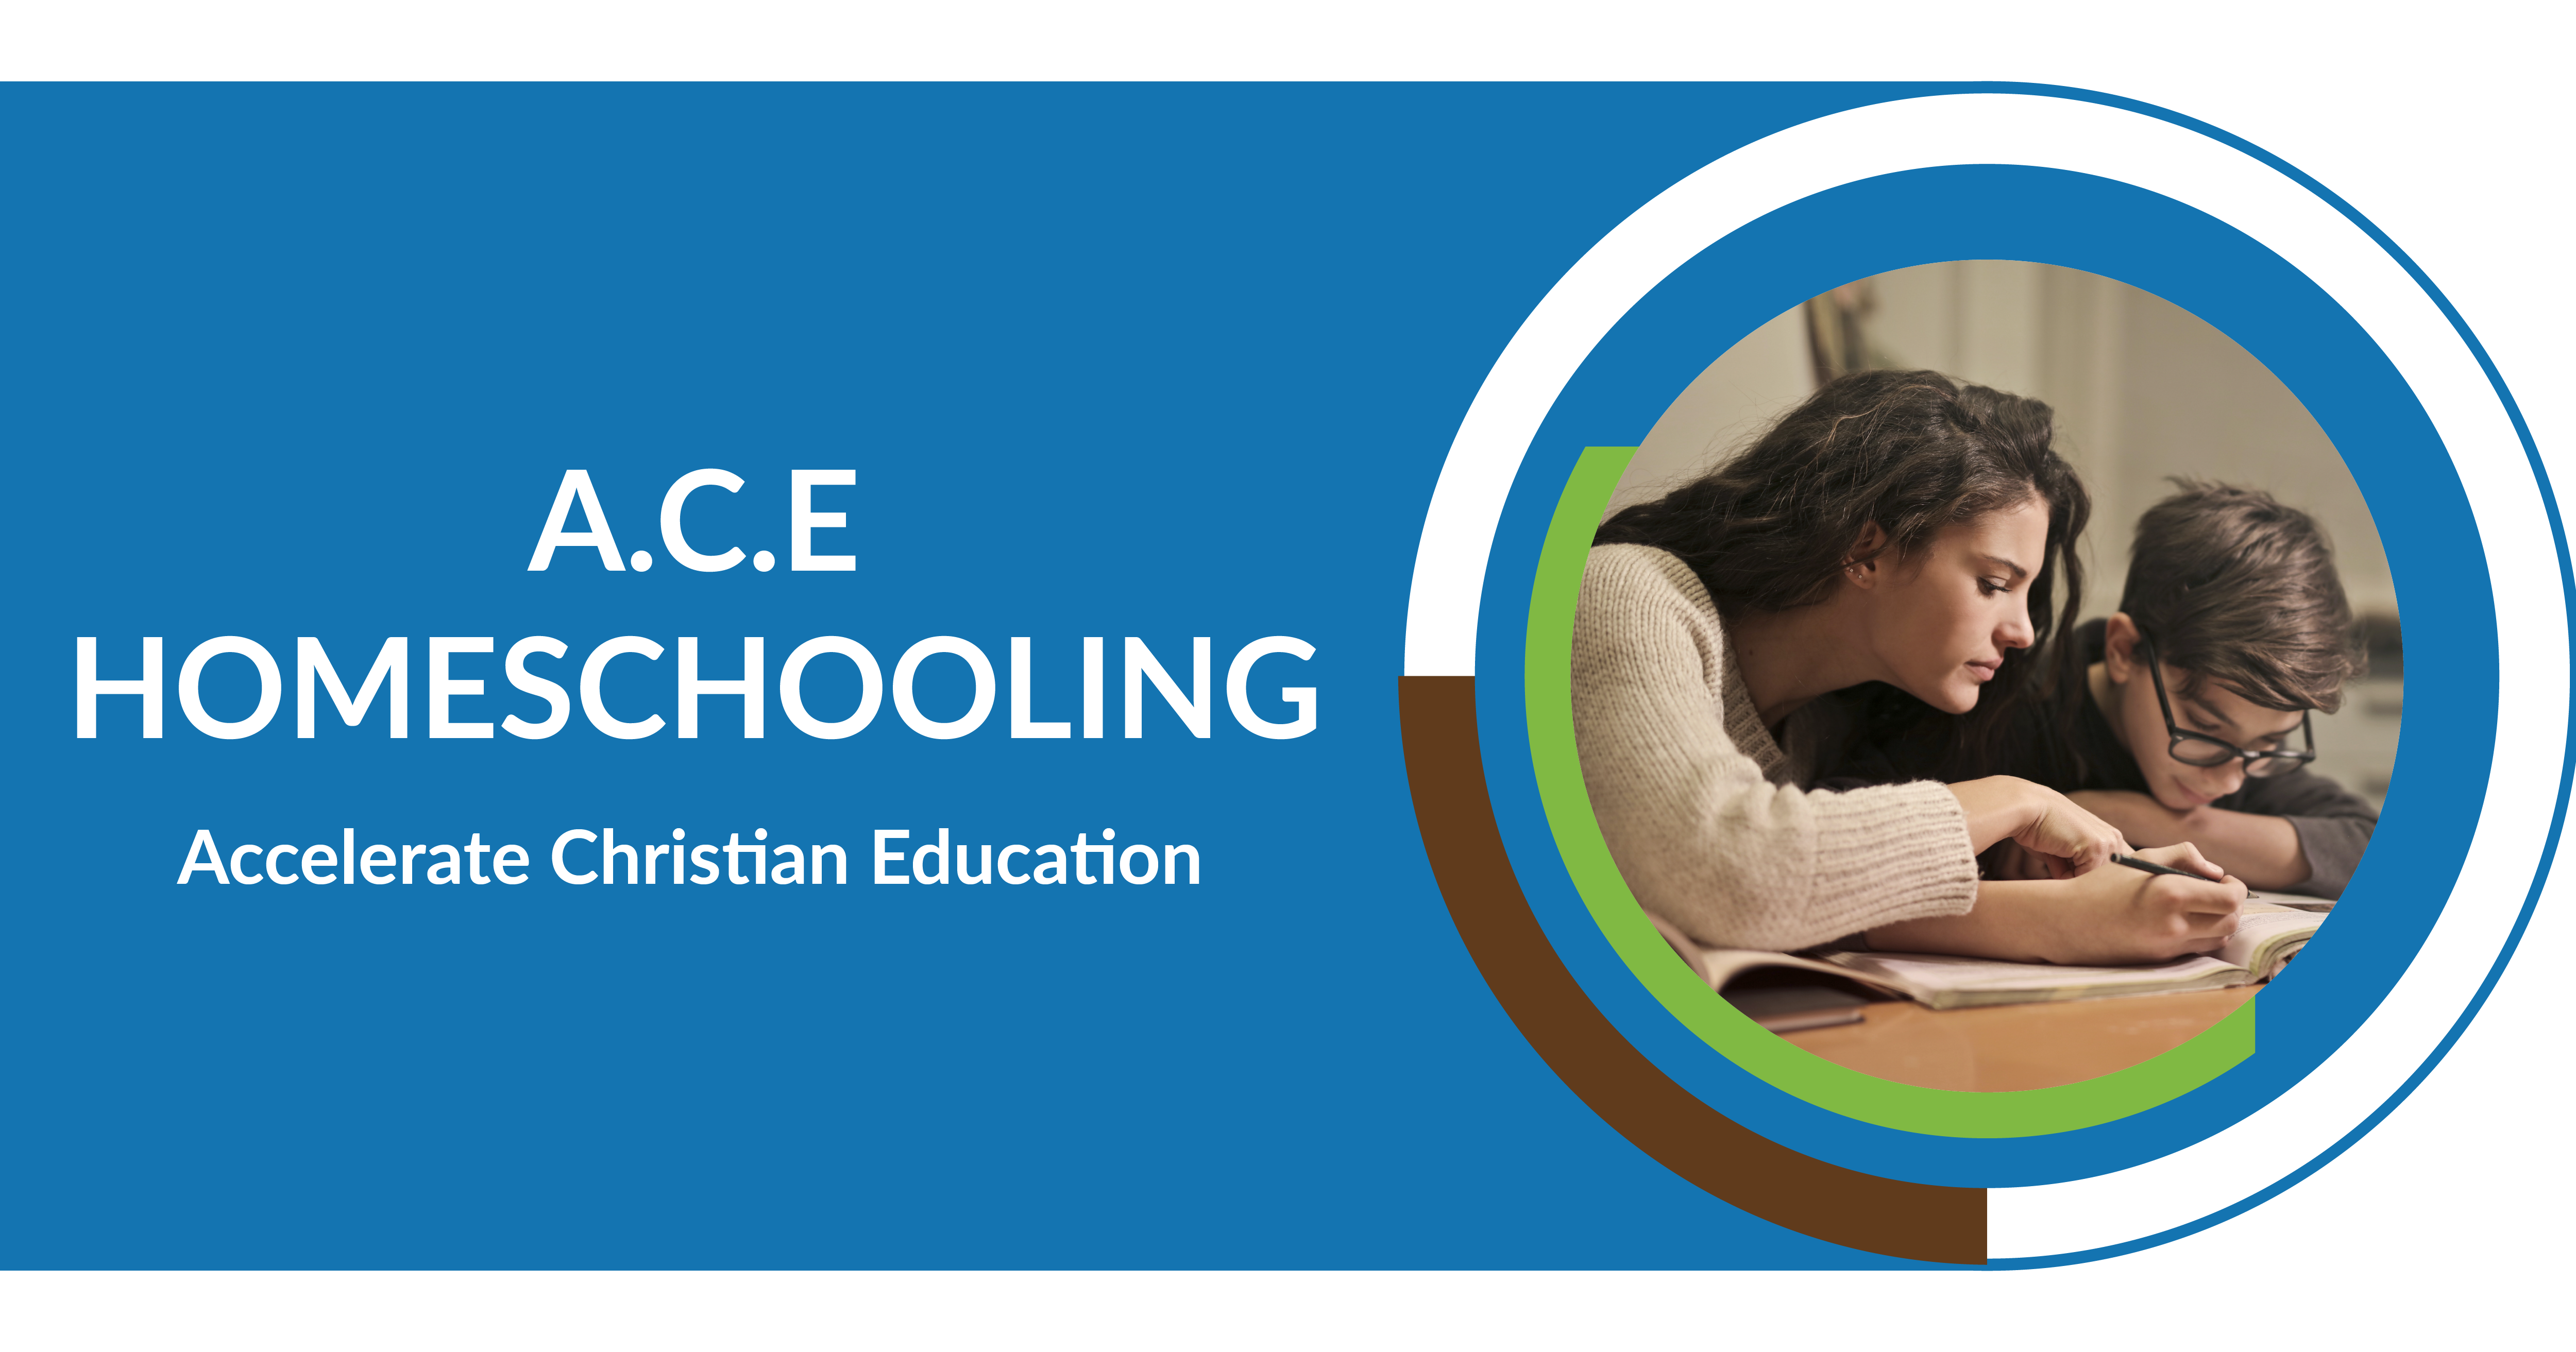 ACE HOMESCHOOLING, Accelerate Christian Education